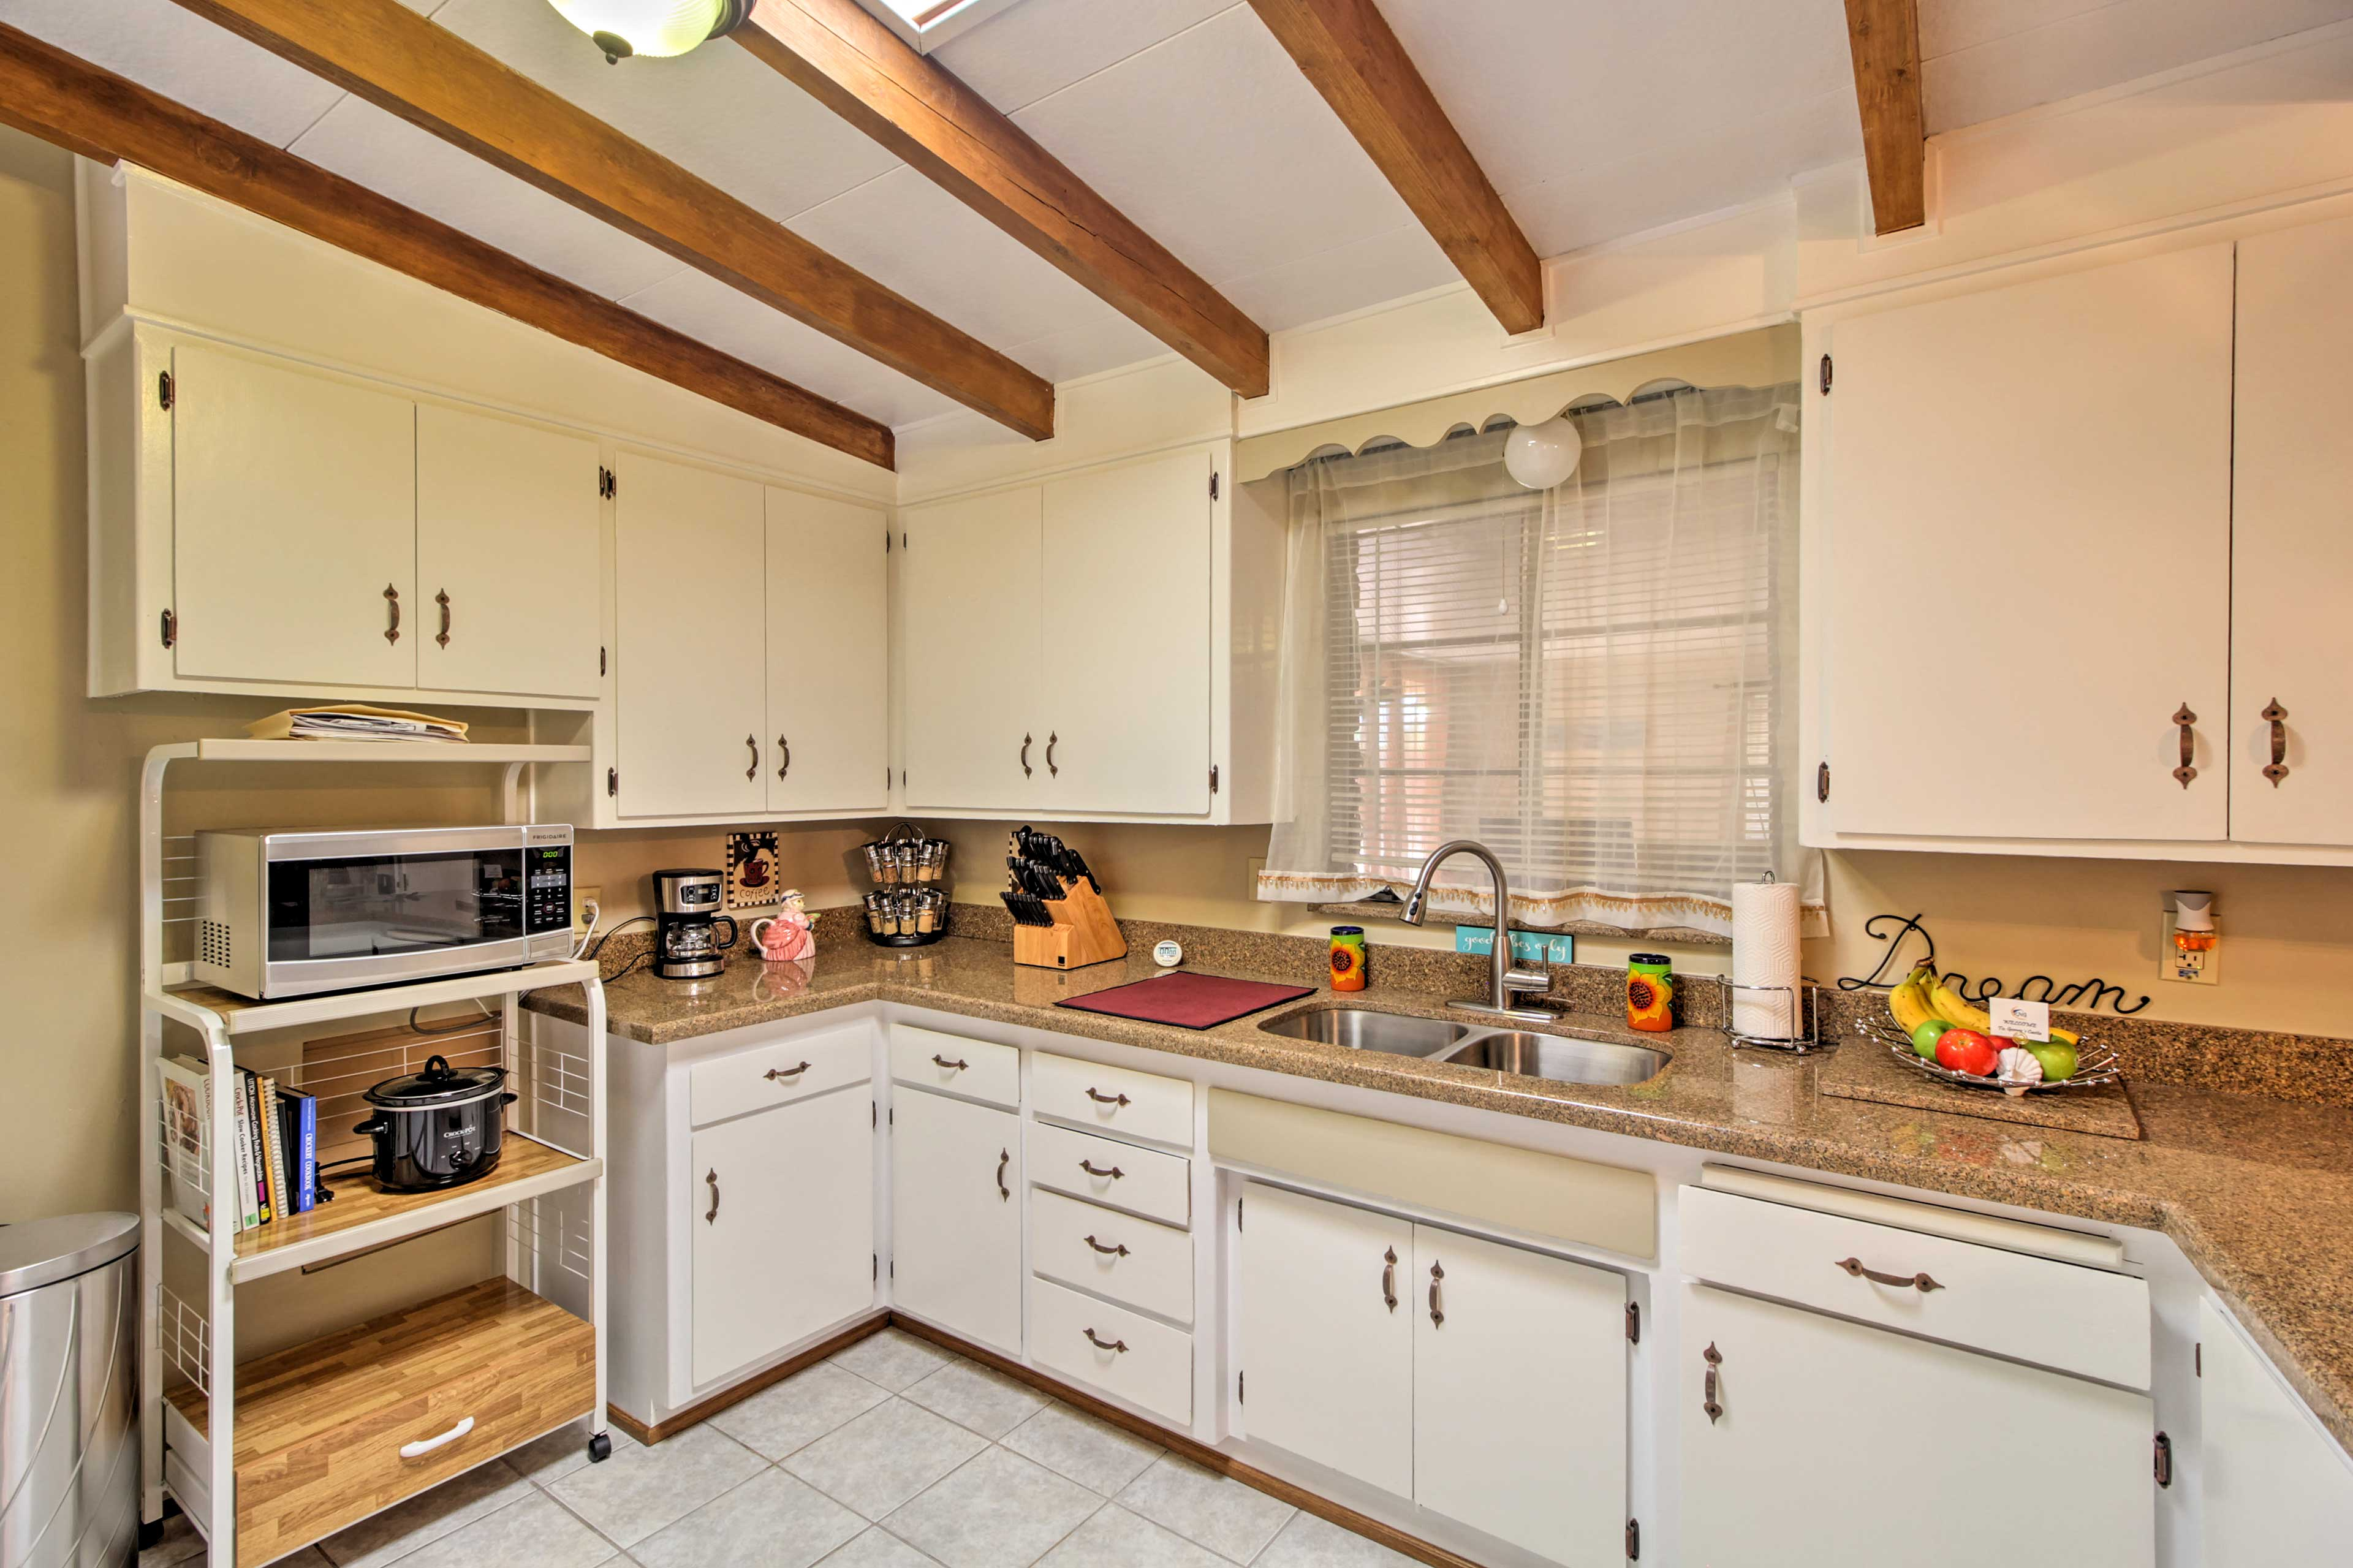 Cooking is a breeze with essential appliances and plenty of counter space.